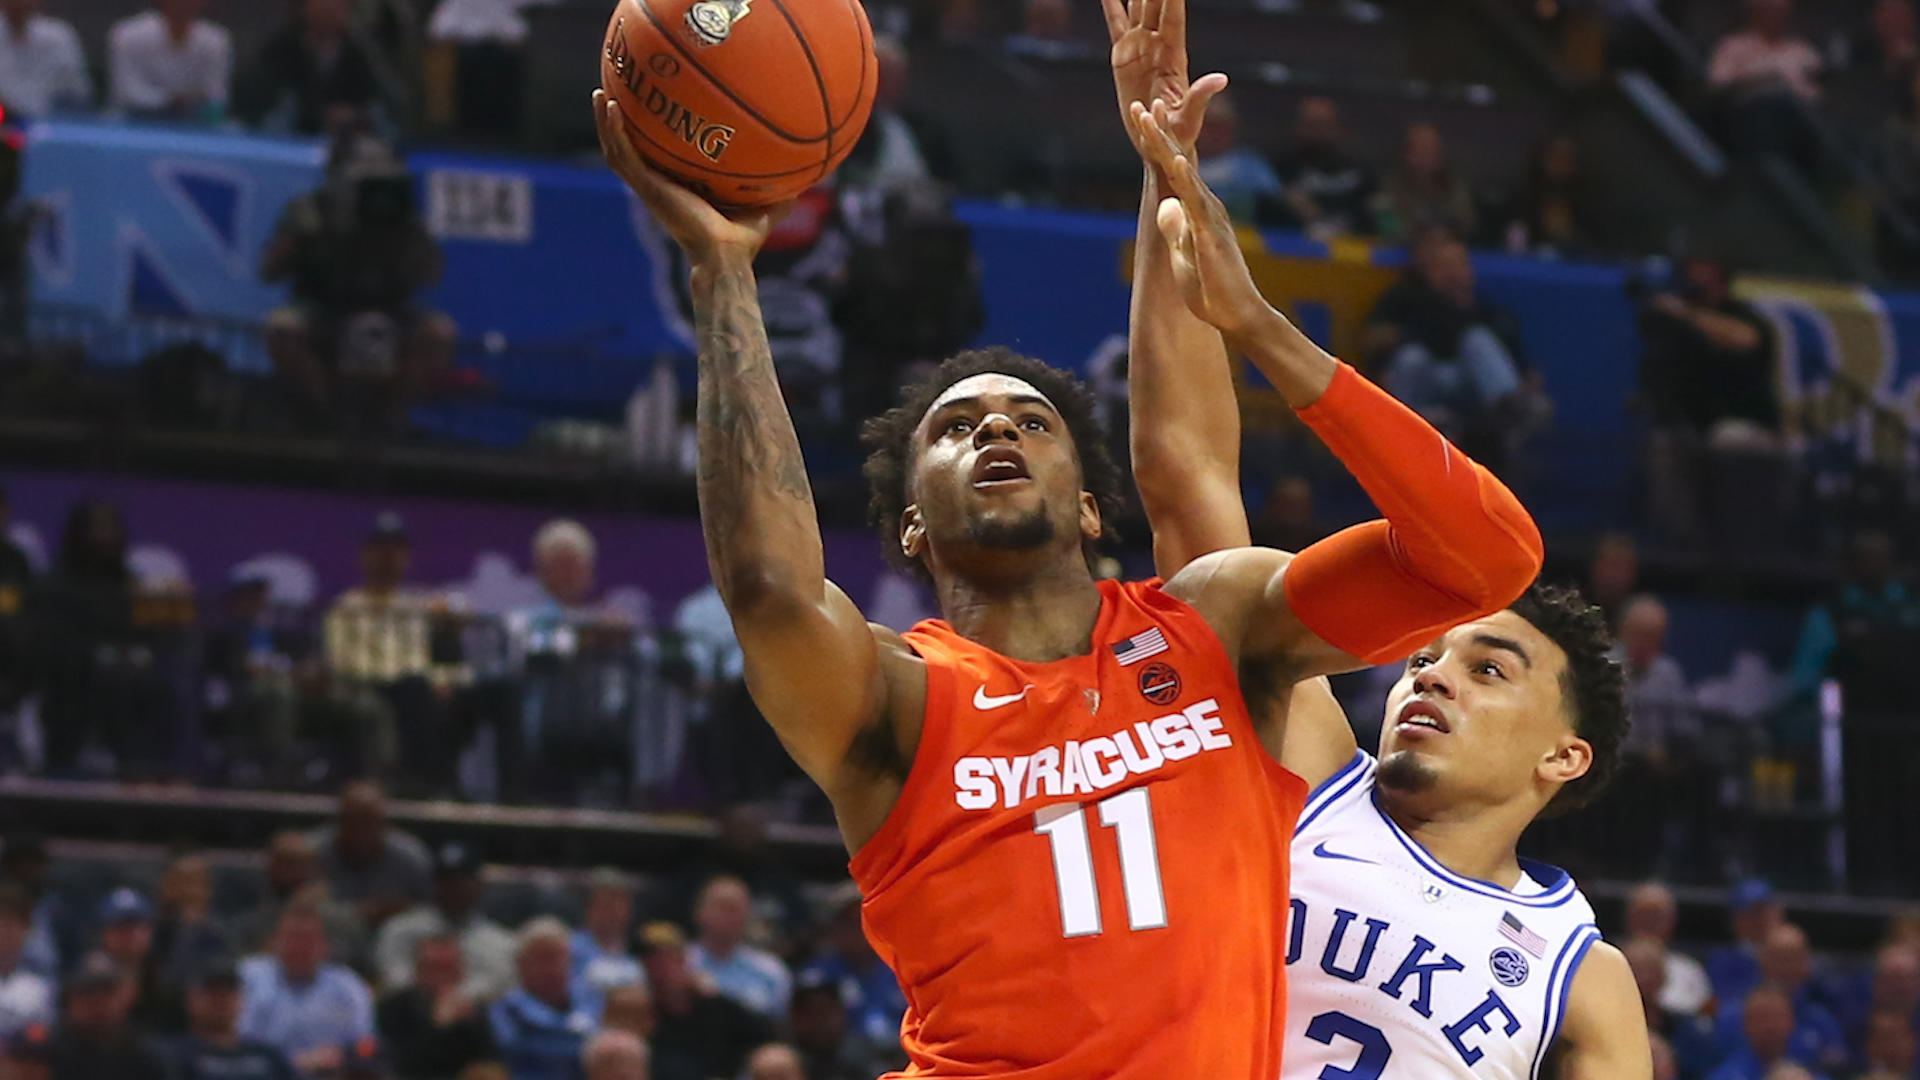 Syracuse Vs Baylor Betting Line March Madness Prediction: CBS Sports On Flipboard